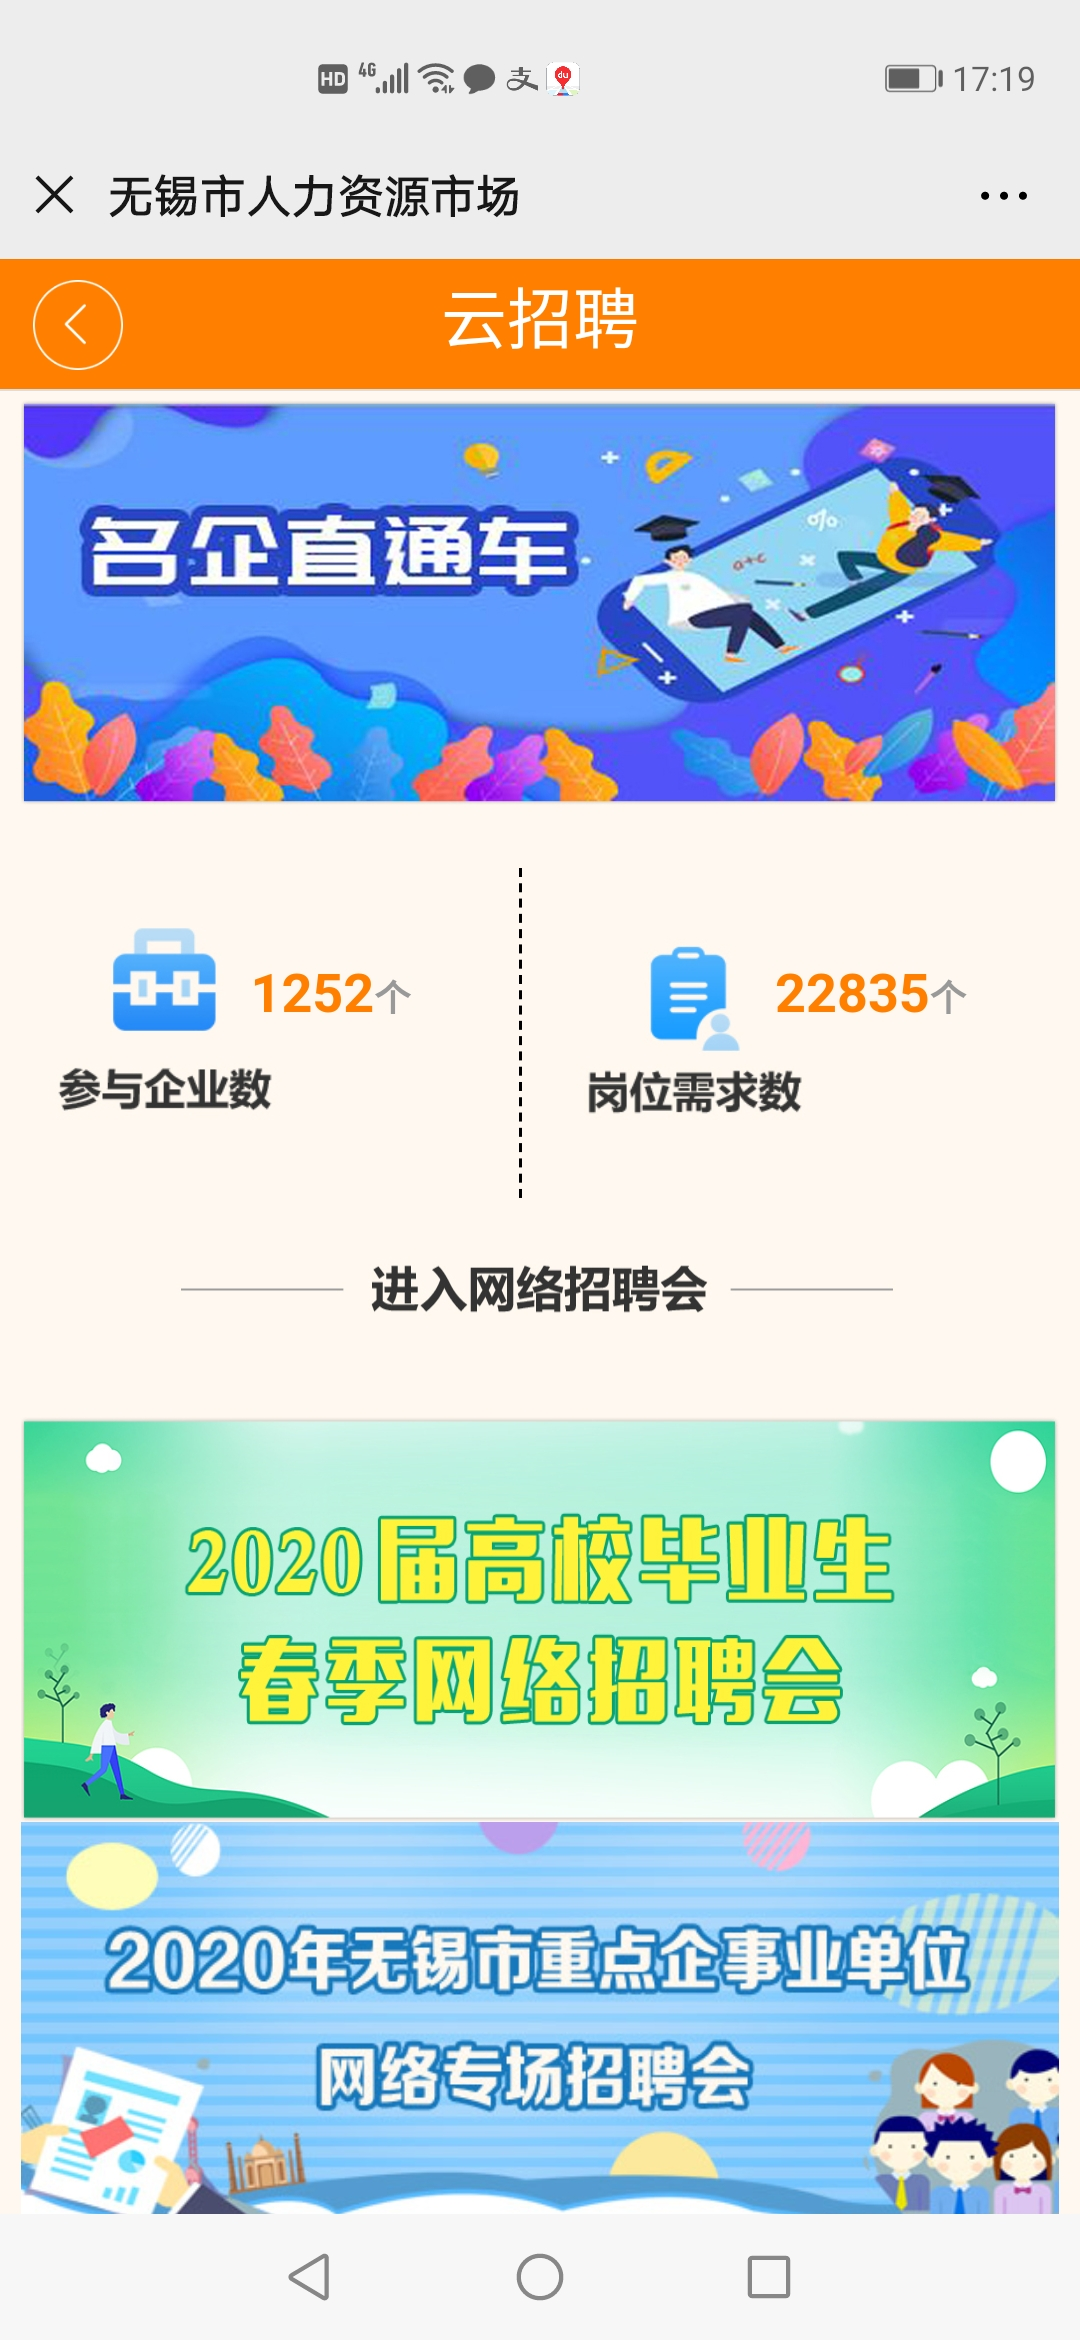 Screenshot_20200517_171922_com.tencent.mm.jpg